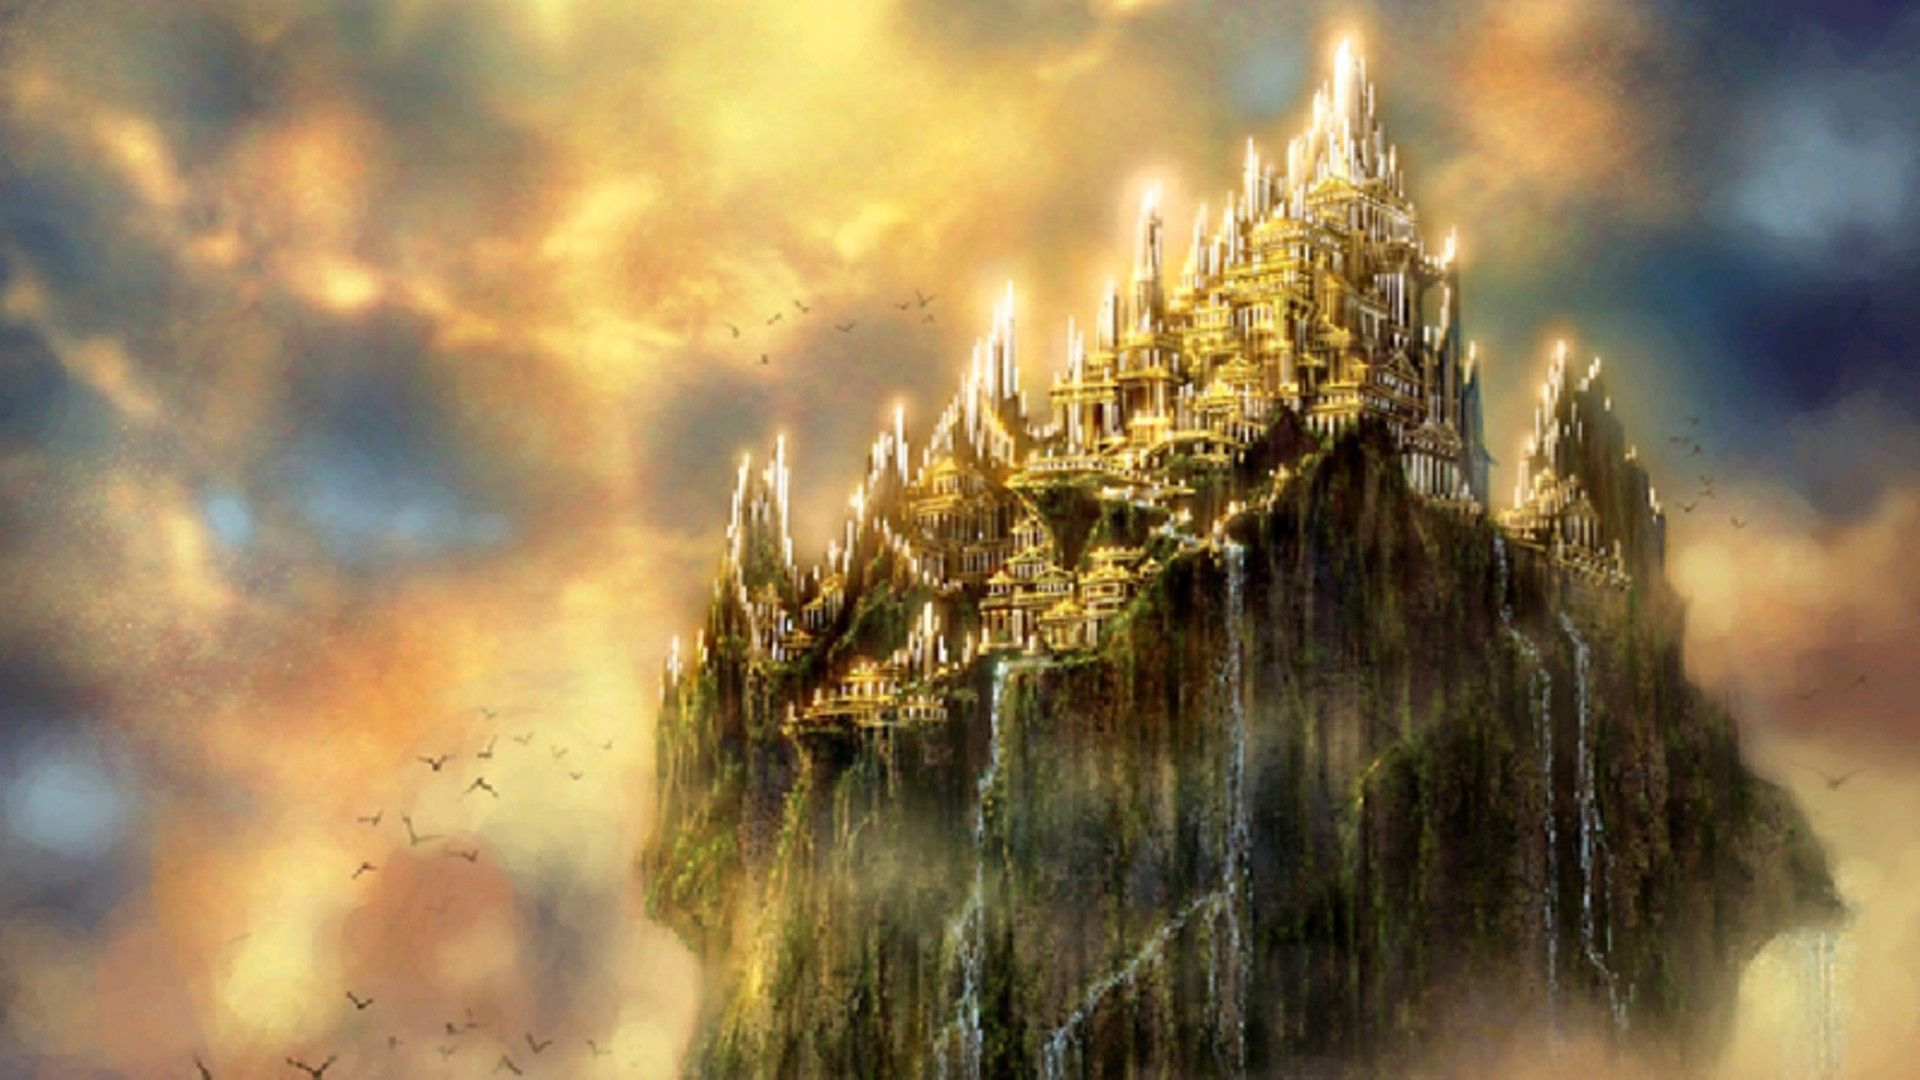 FANTASY CASTLES castles fantasy wallpapers castle wallpaper 1920x1080